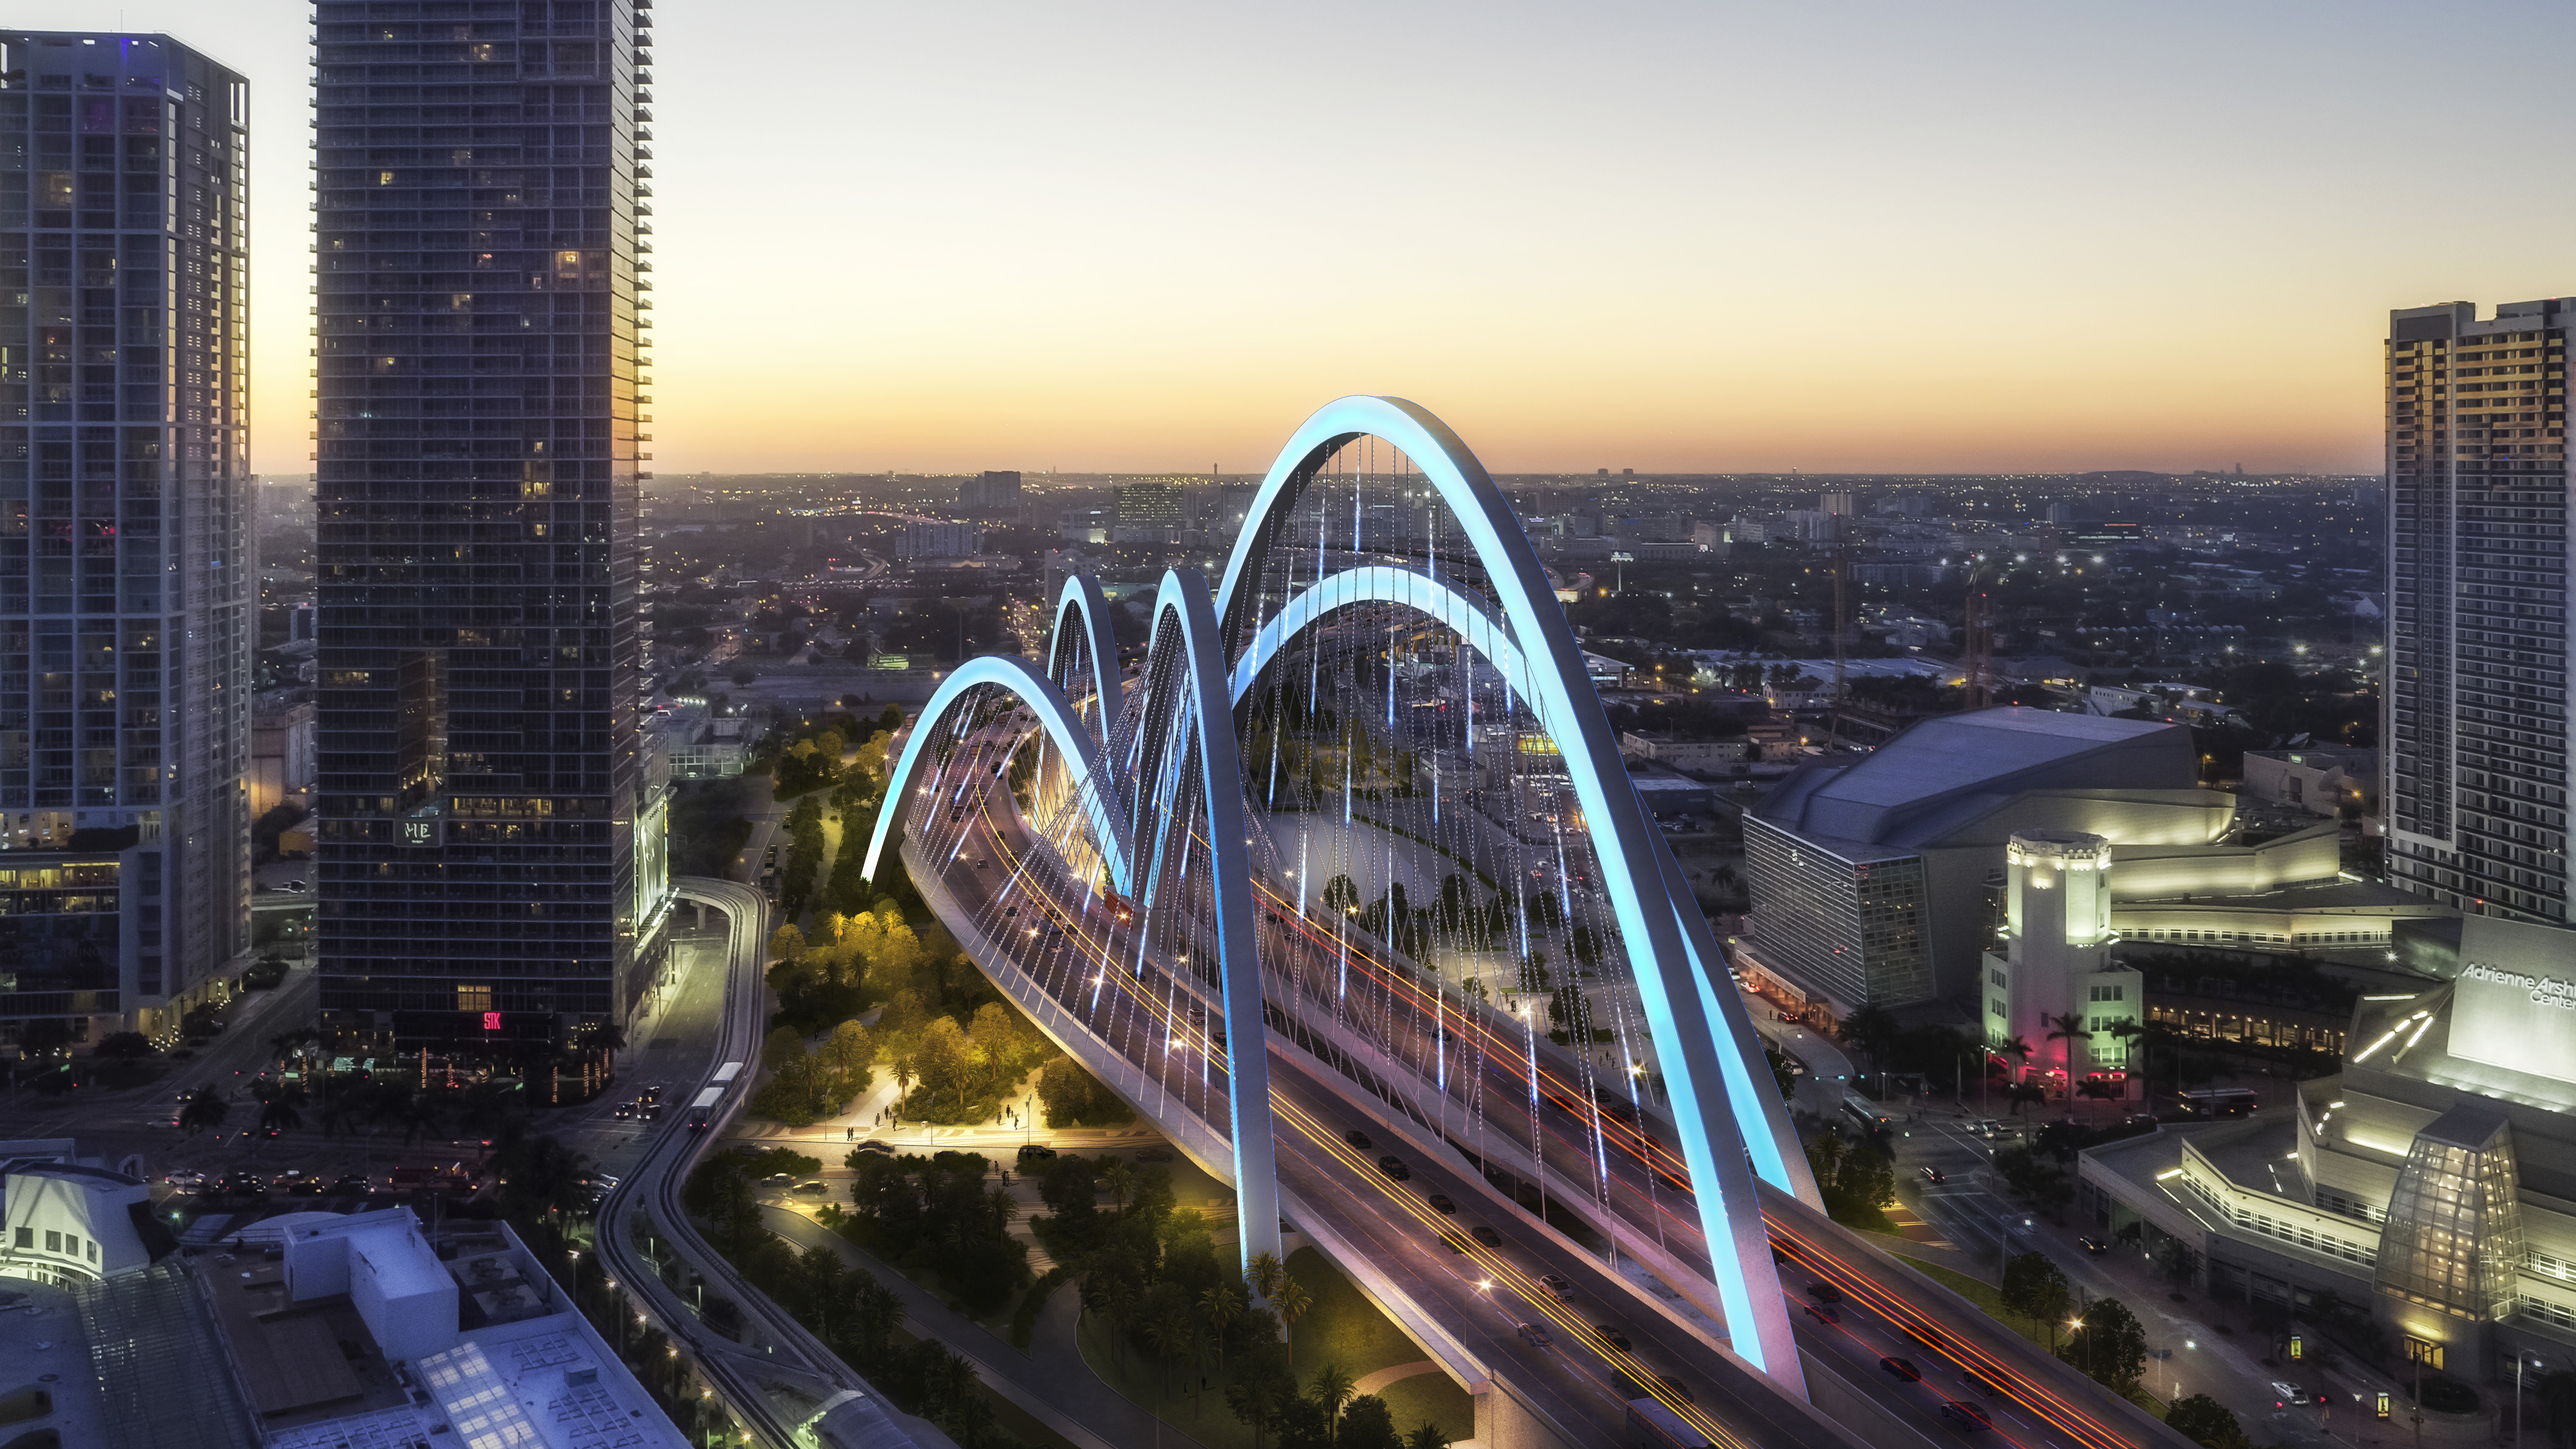 Miami's $800M 'signature bridge' project chosen